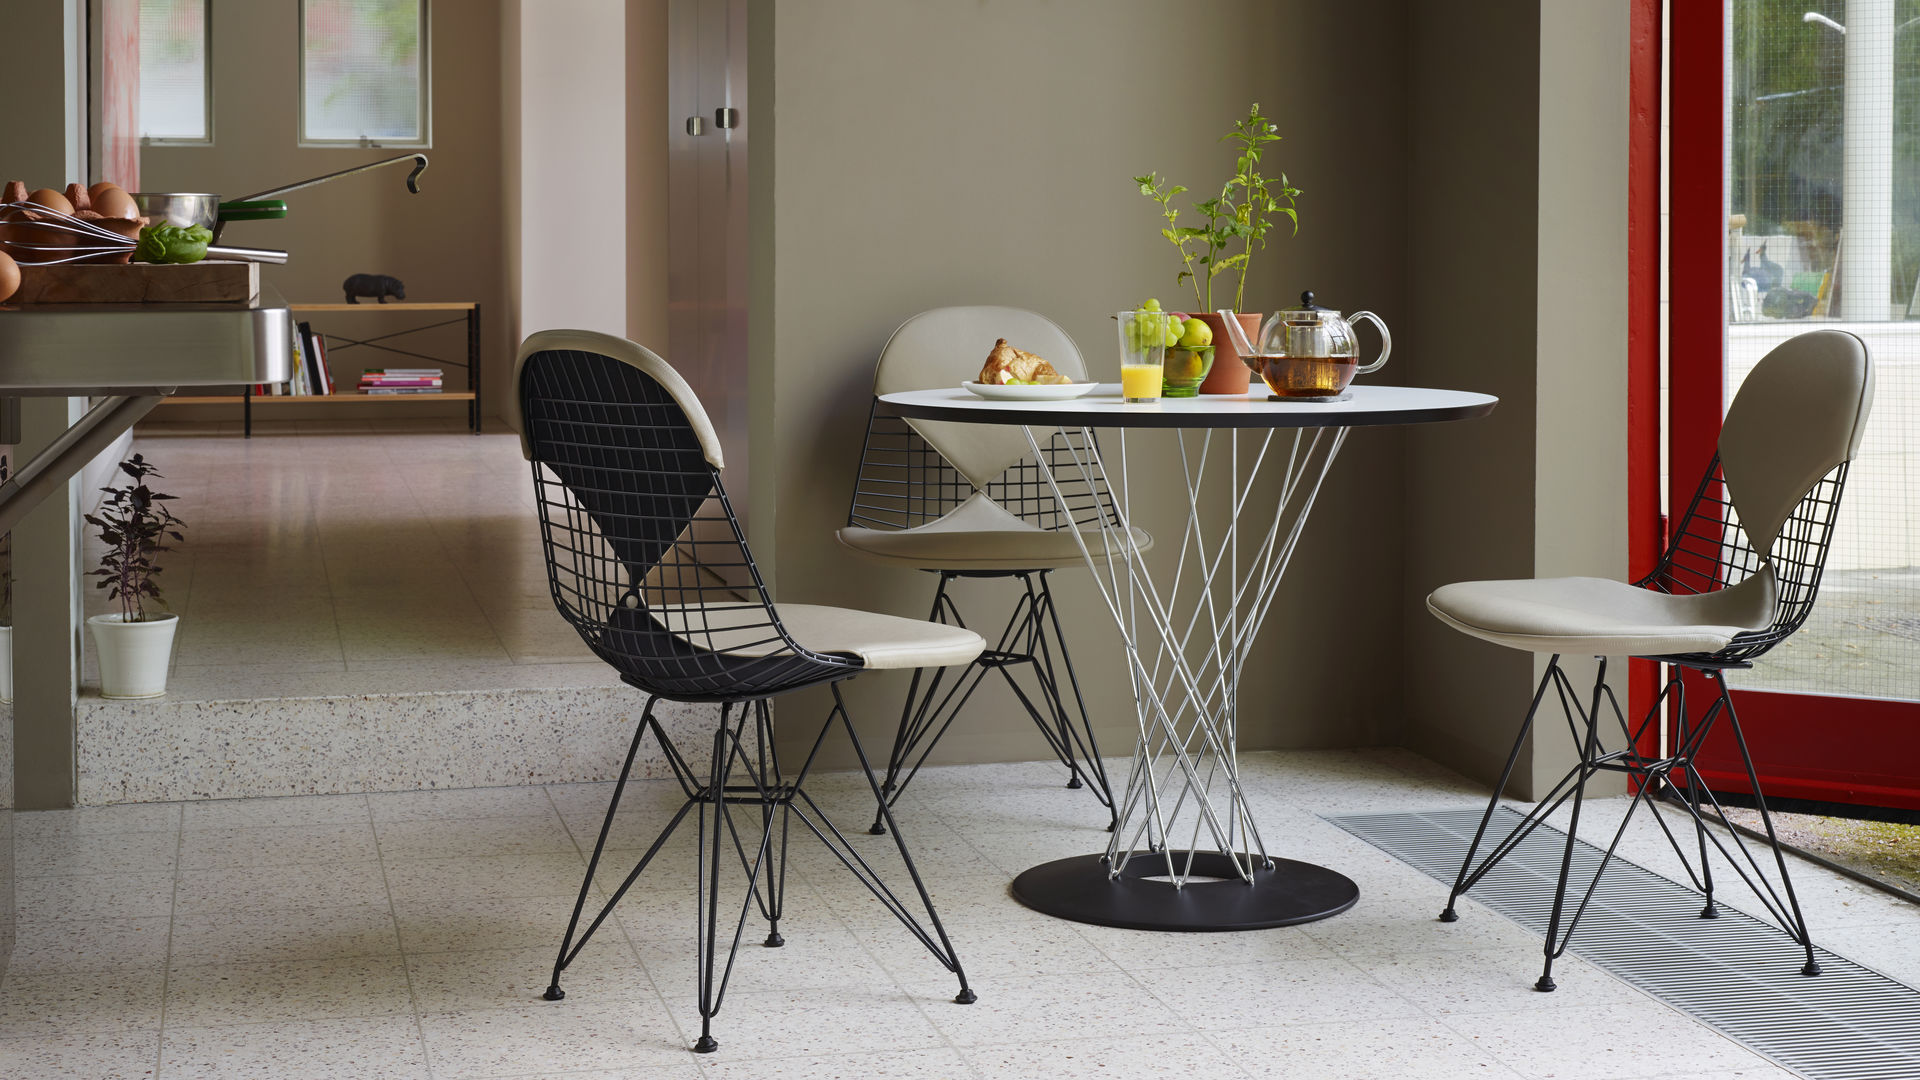 Wire Chair DKR ambiance 4